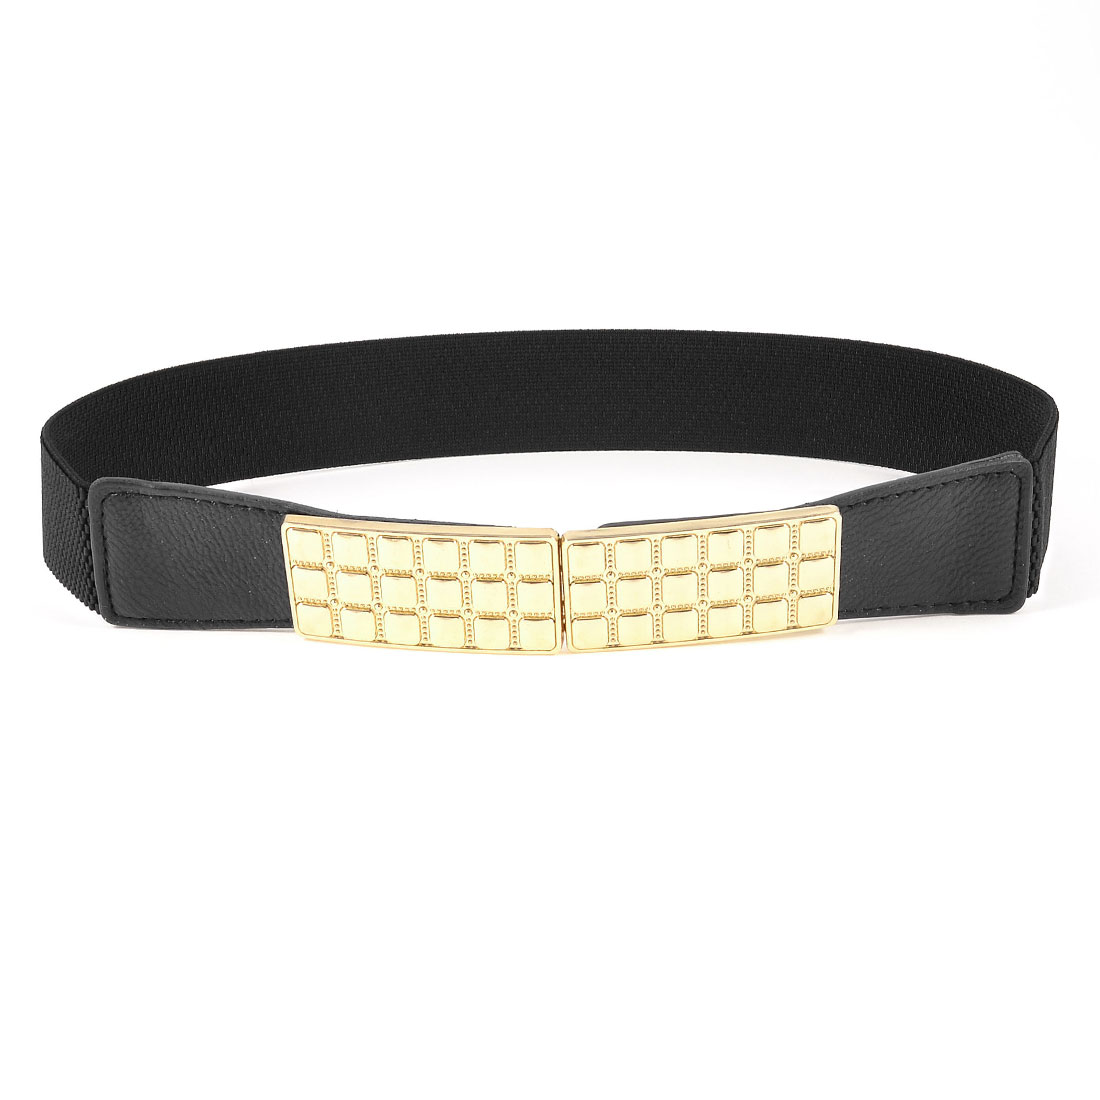 Lady Gold Tone Metal Plate Hook Buckle Black Elastic Waist Band Belt